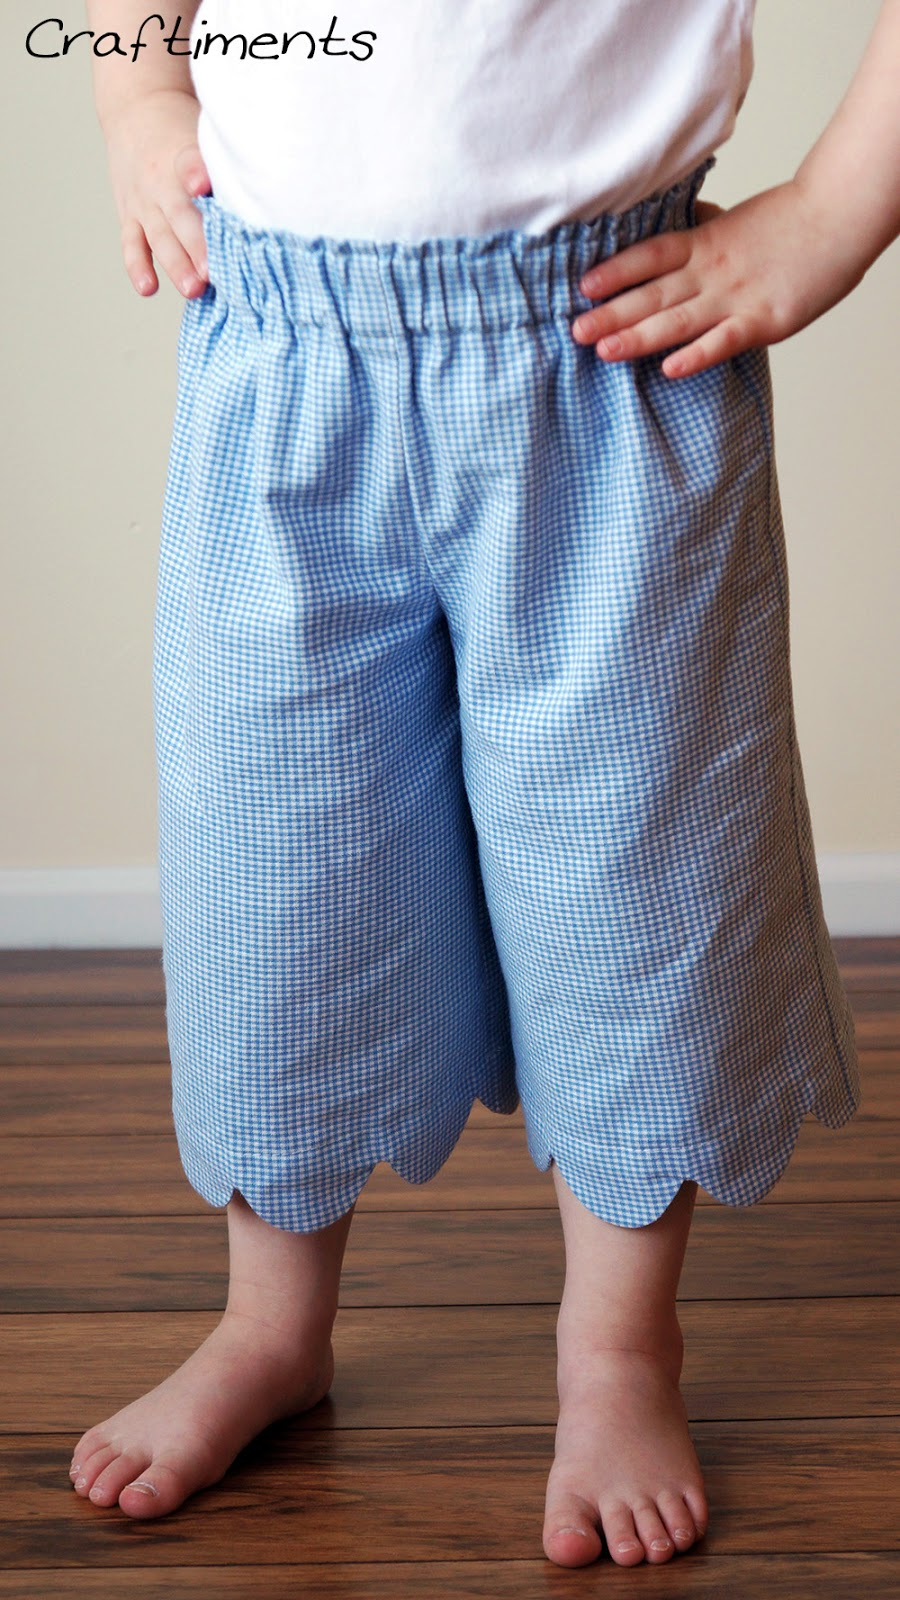 Craftiments:  Scalloped hem gauchos made with fabric repurposed from an old skirt